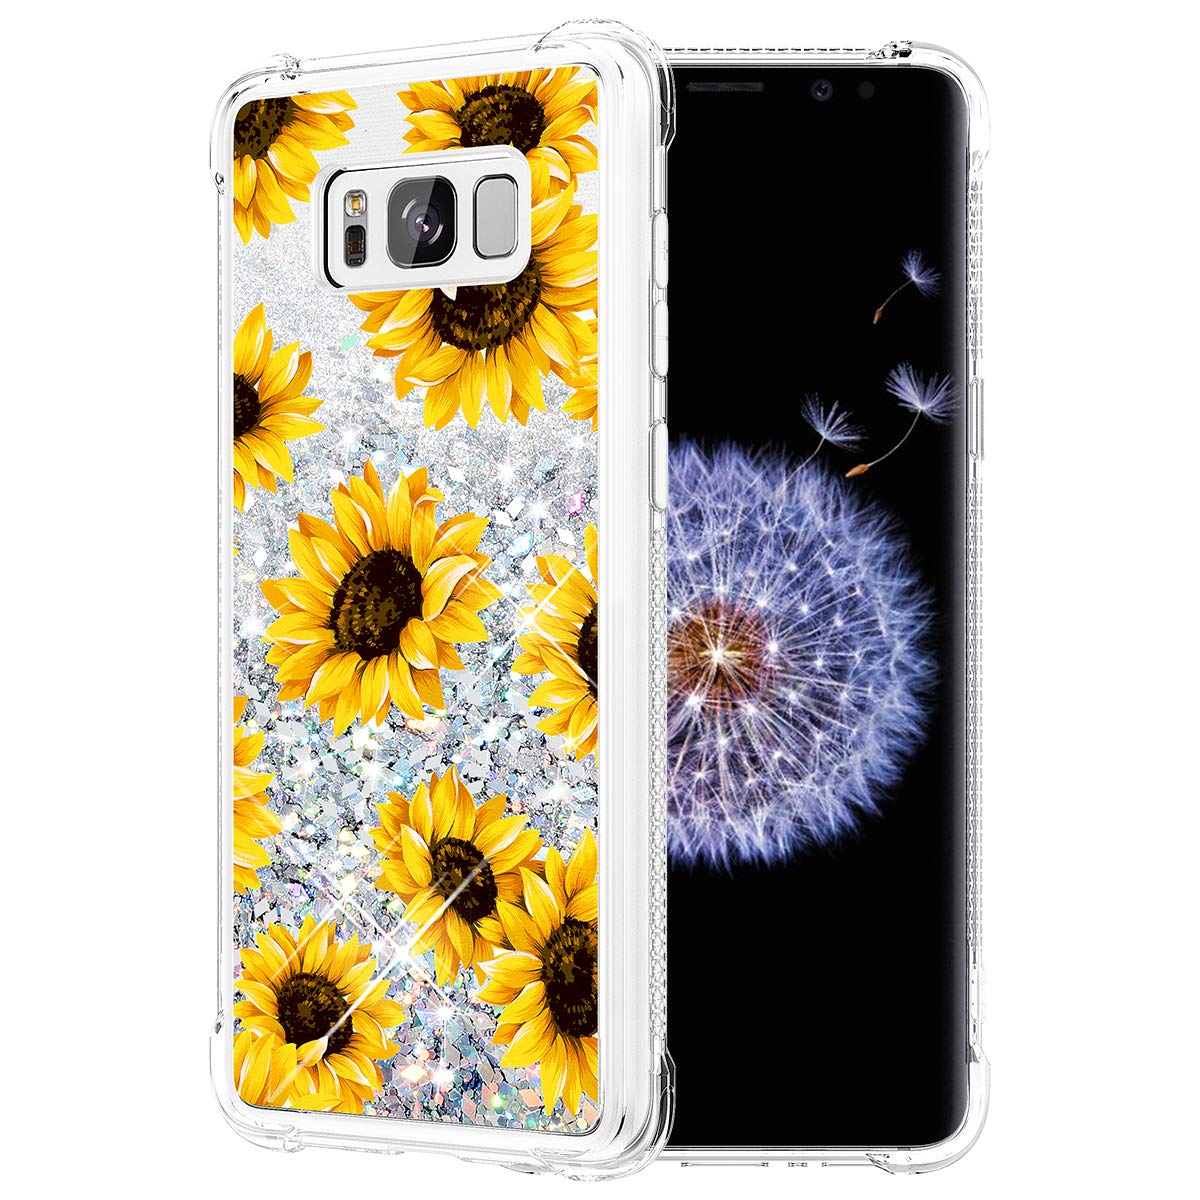 Caka Glitter Case for Galaxy S8 Case Flower Bling Luxury Fashion Flowing Liquid Floating Sparkle Glitter Soft TPU Case for Samsung Galaxy S8 (Sunflower)